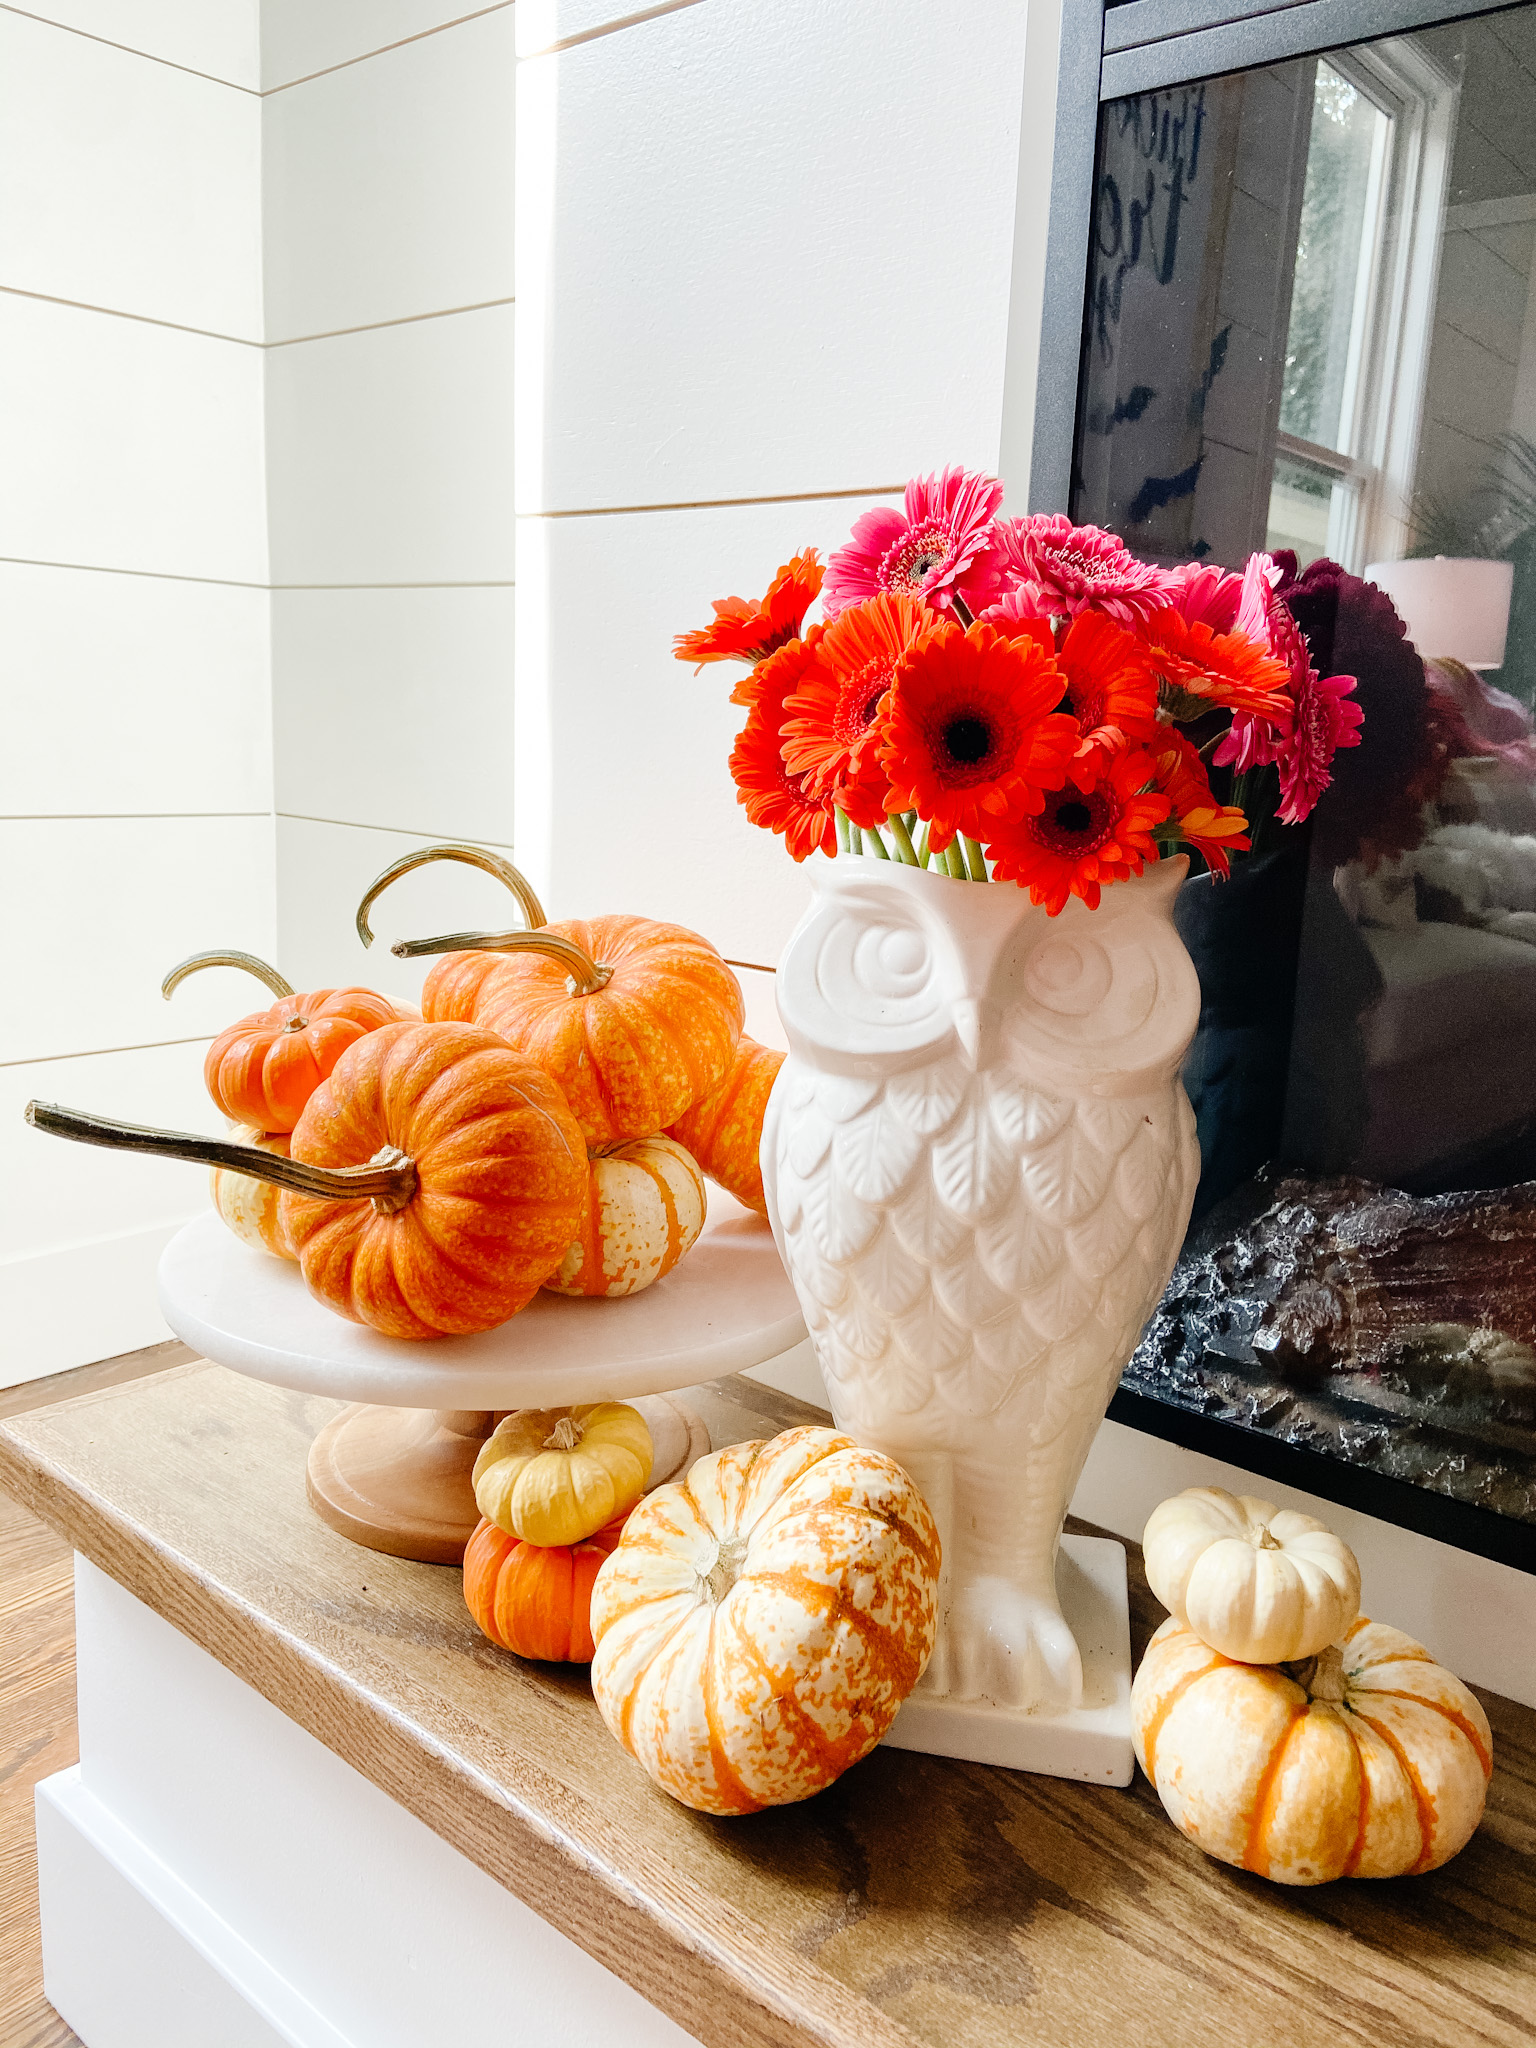 Easy easy ways to bring color into your cottage home for fall.